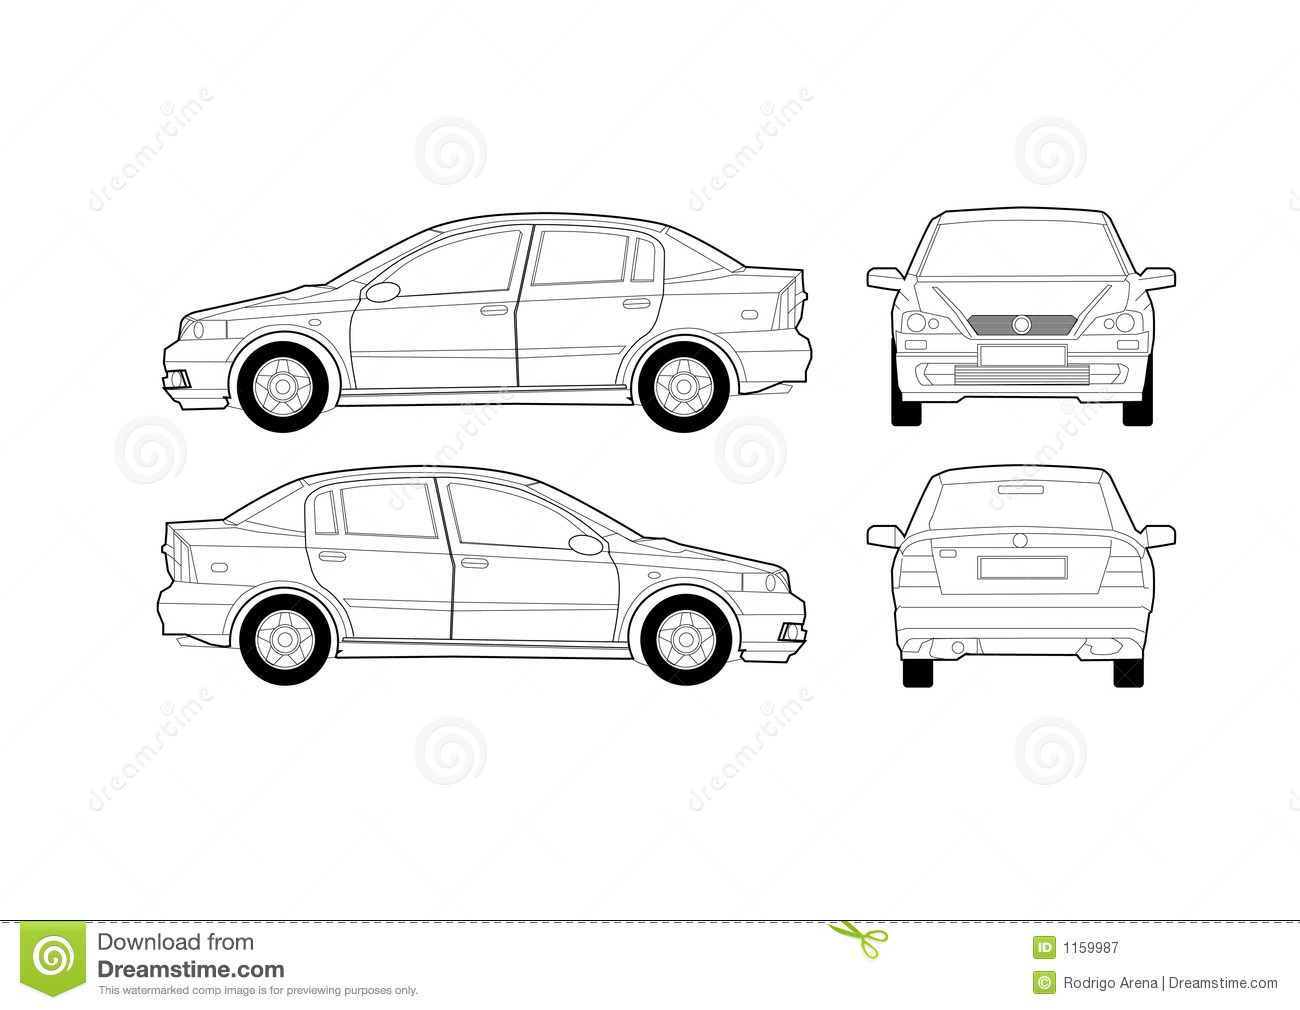 generic saloon car diagram royalty free stock photography. Black Bedroom Furniture Sets. Home Design Ideas